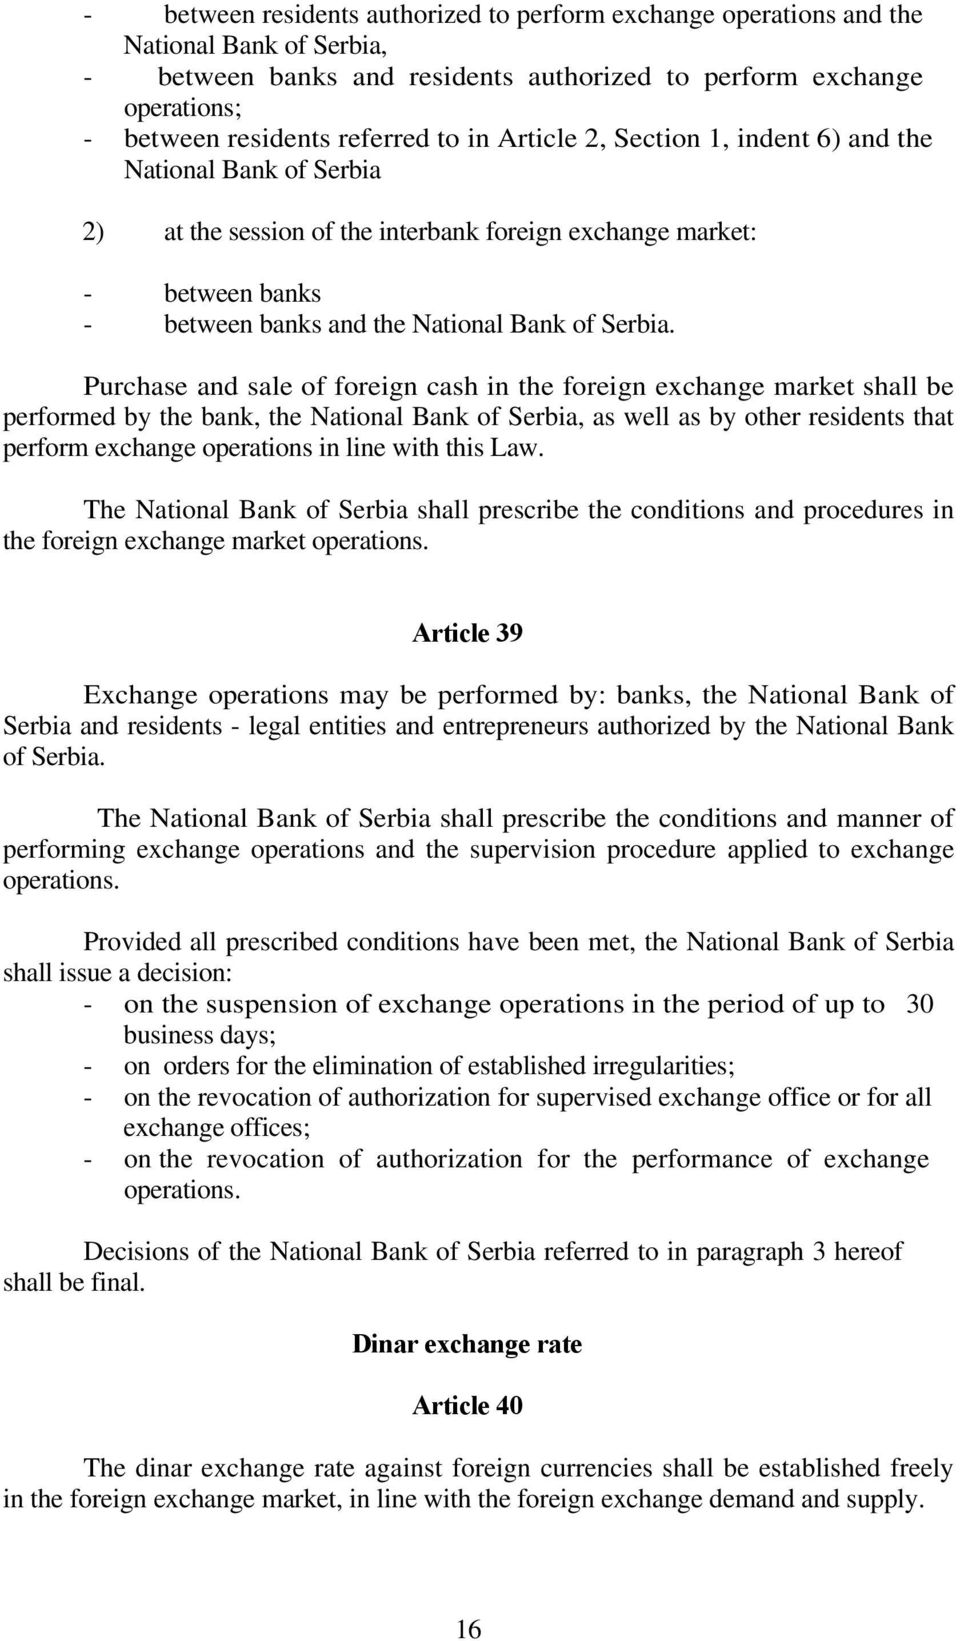 Purchase and sale of foreign cash in the foreign exchange market shall be performed by the bank, the National Bank of Serbia, as well as by other residents that perform exchange operations in line